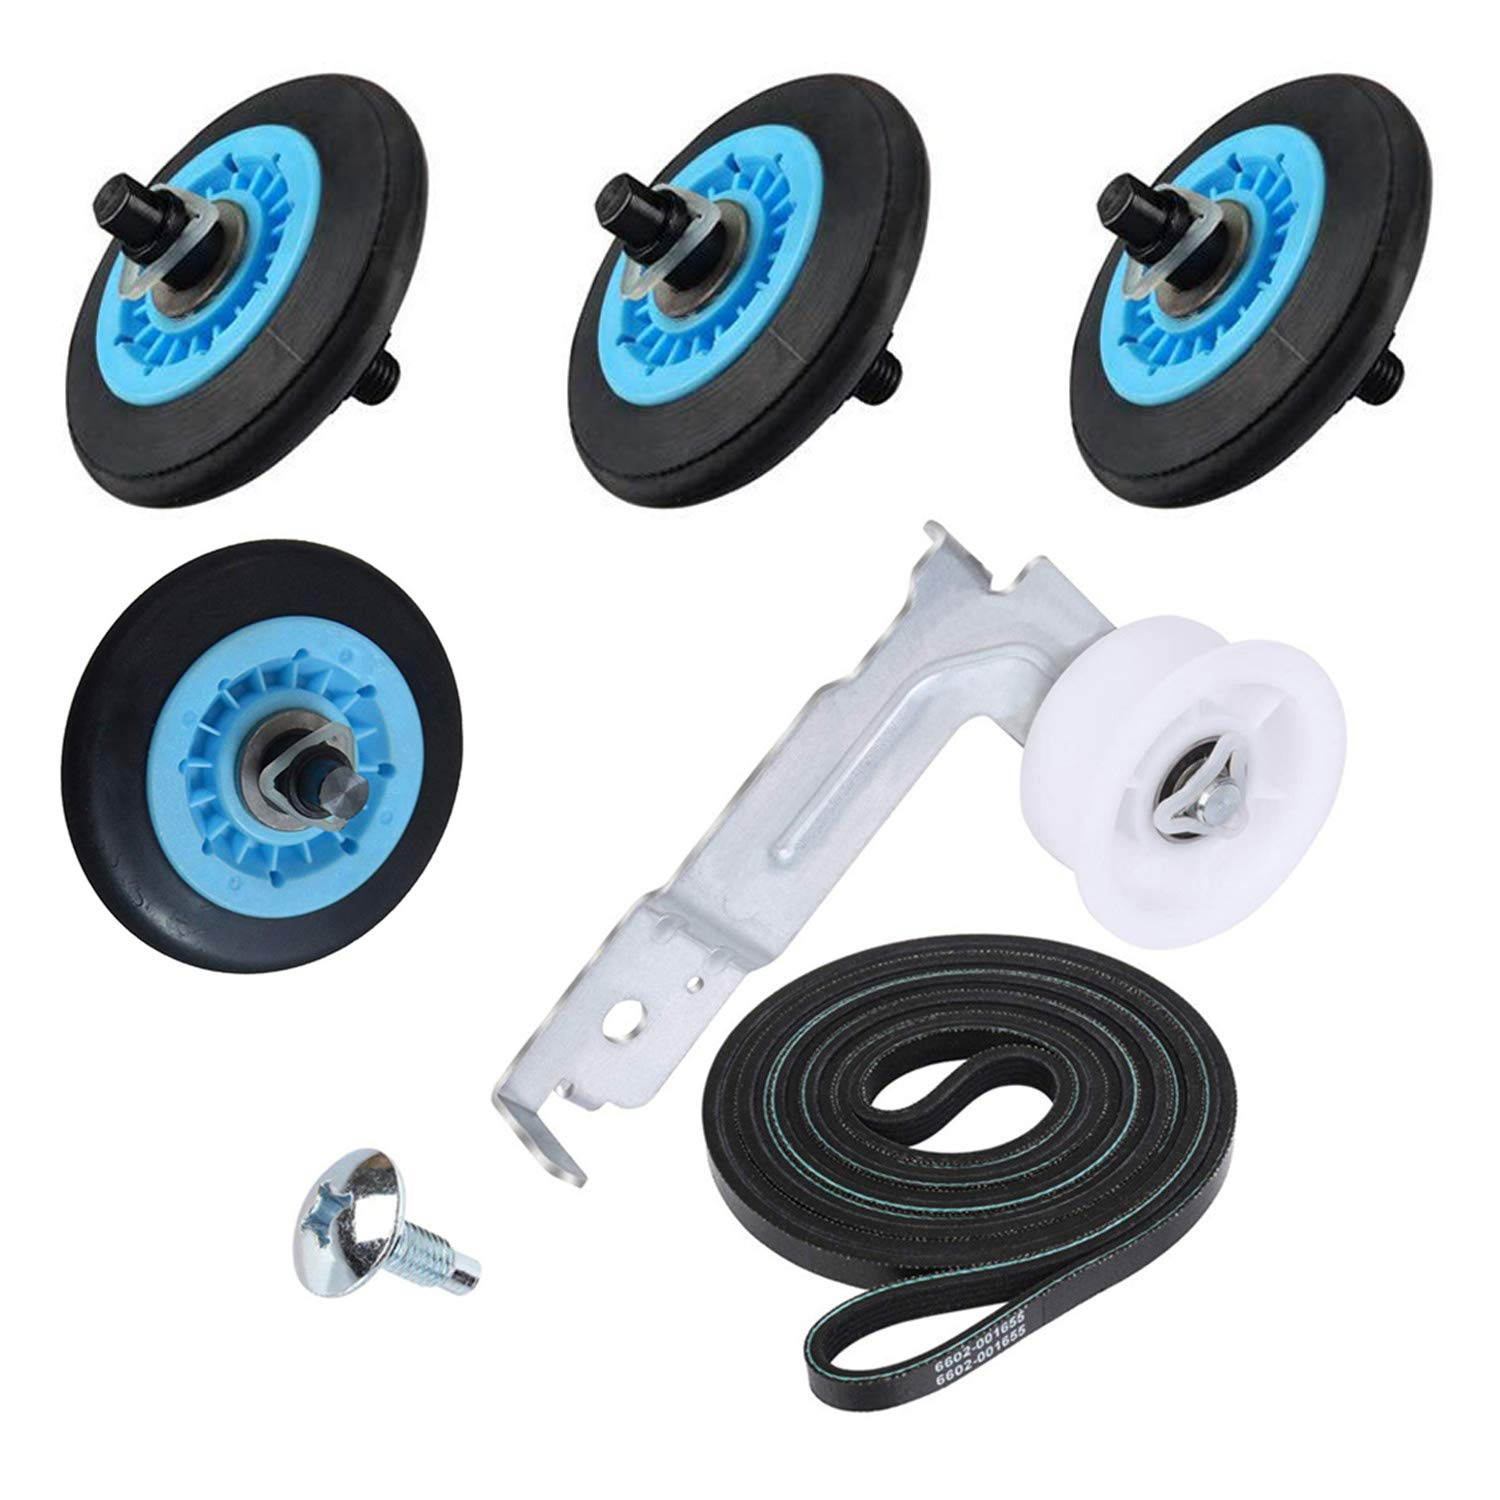 Dryer Repair Kit Is Compatible with Samsung Dc97-16782A Drum Support Roll, 6602-001655 Tension Belt, Dc93-00634A Idler Pulley Replacement Ap5325135 Ap4373659 Ap6038887 Ps4221885 Ps4133825